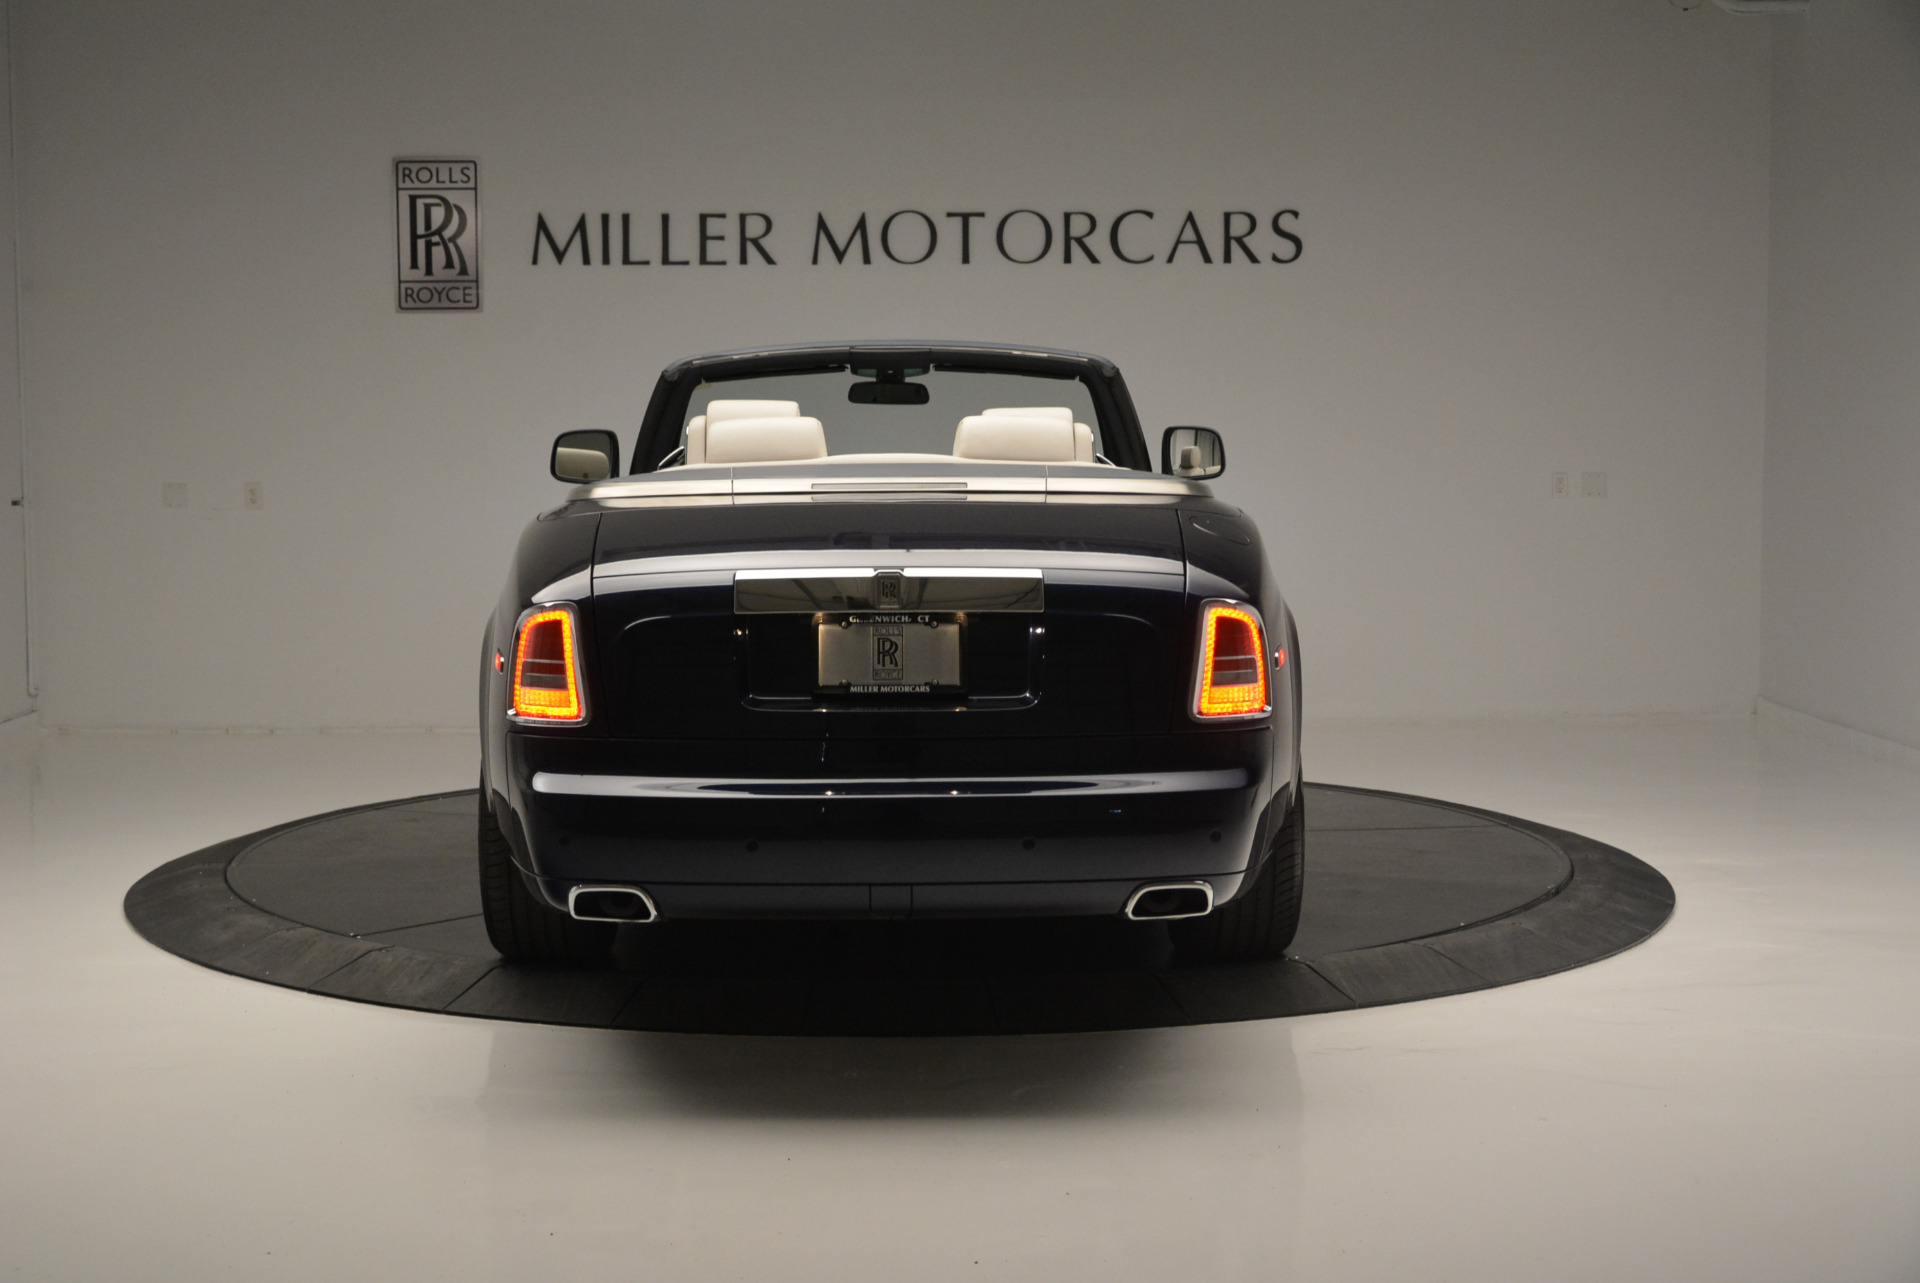 Used 2014 Rolls-Royce Phantom Drophead Coupe  For Sale In Greenwich, CT 2356_p4